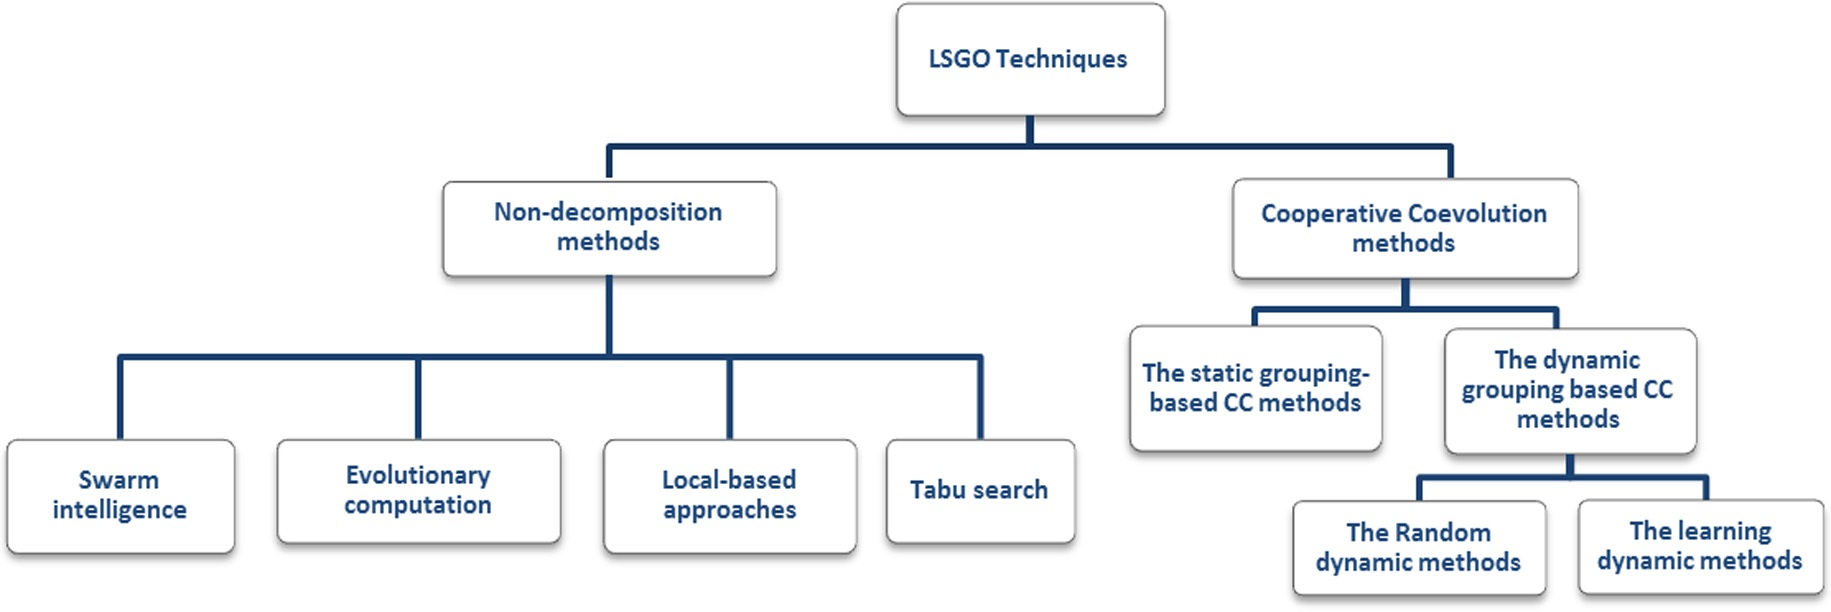 hierarchical-classification-lsgo-techniques